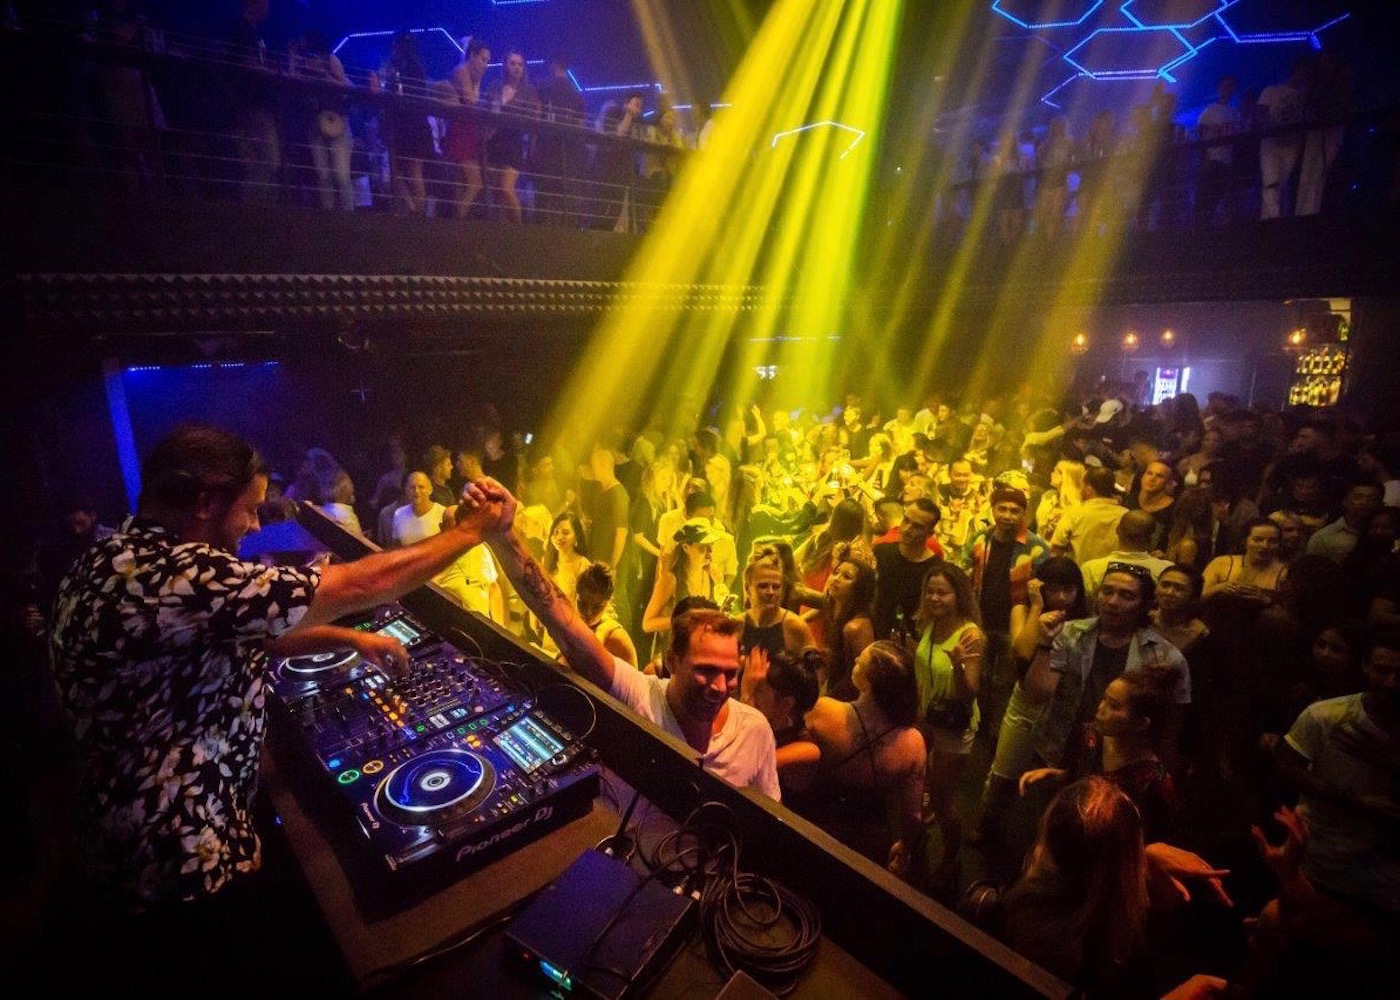 The Lost City Bali nightclub with live DJ in Canggu, Bali, Indonesia